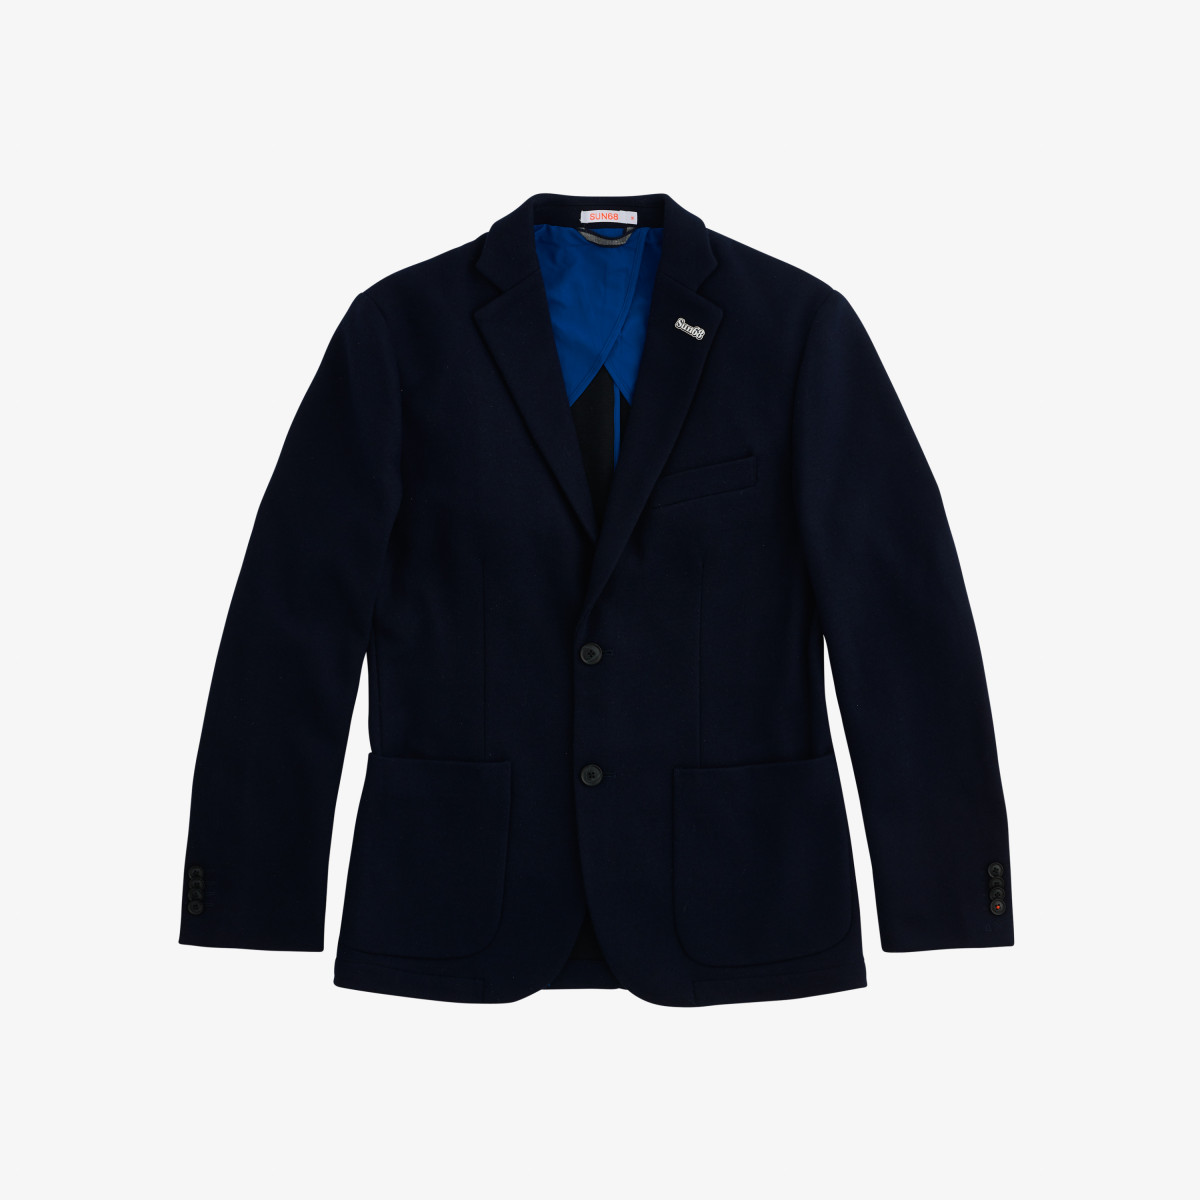 JACKET JERSEY WOOL NAVY BLUE